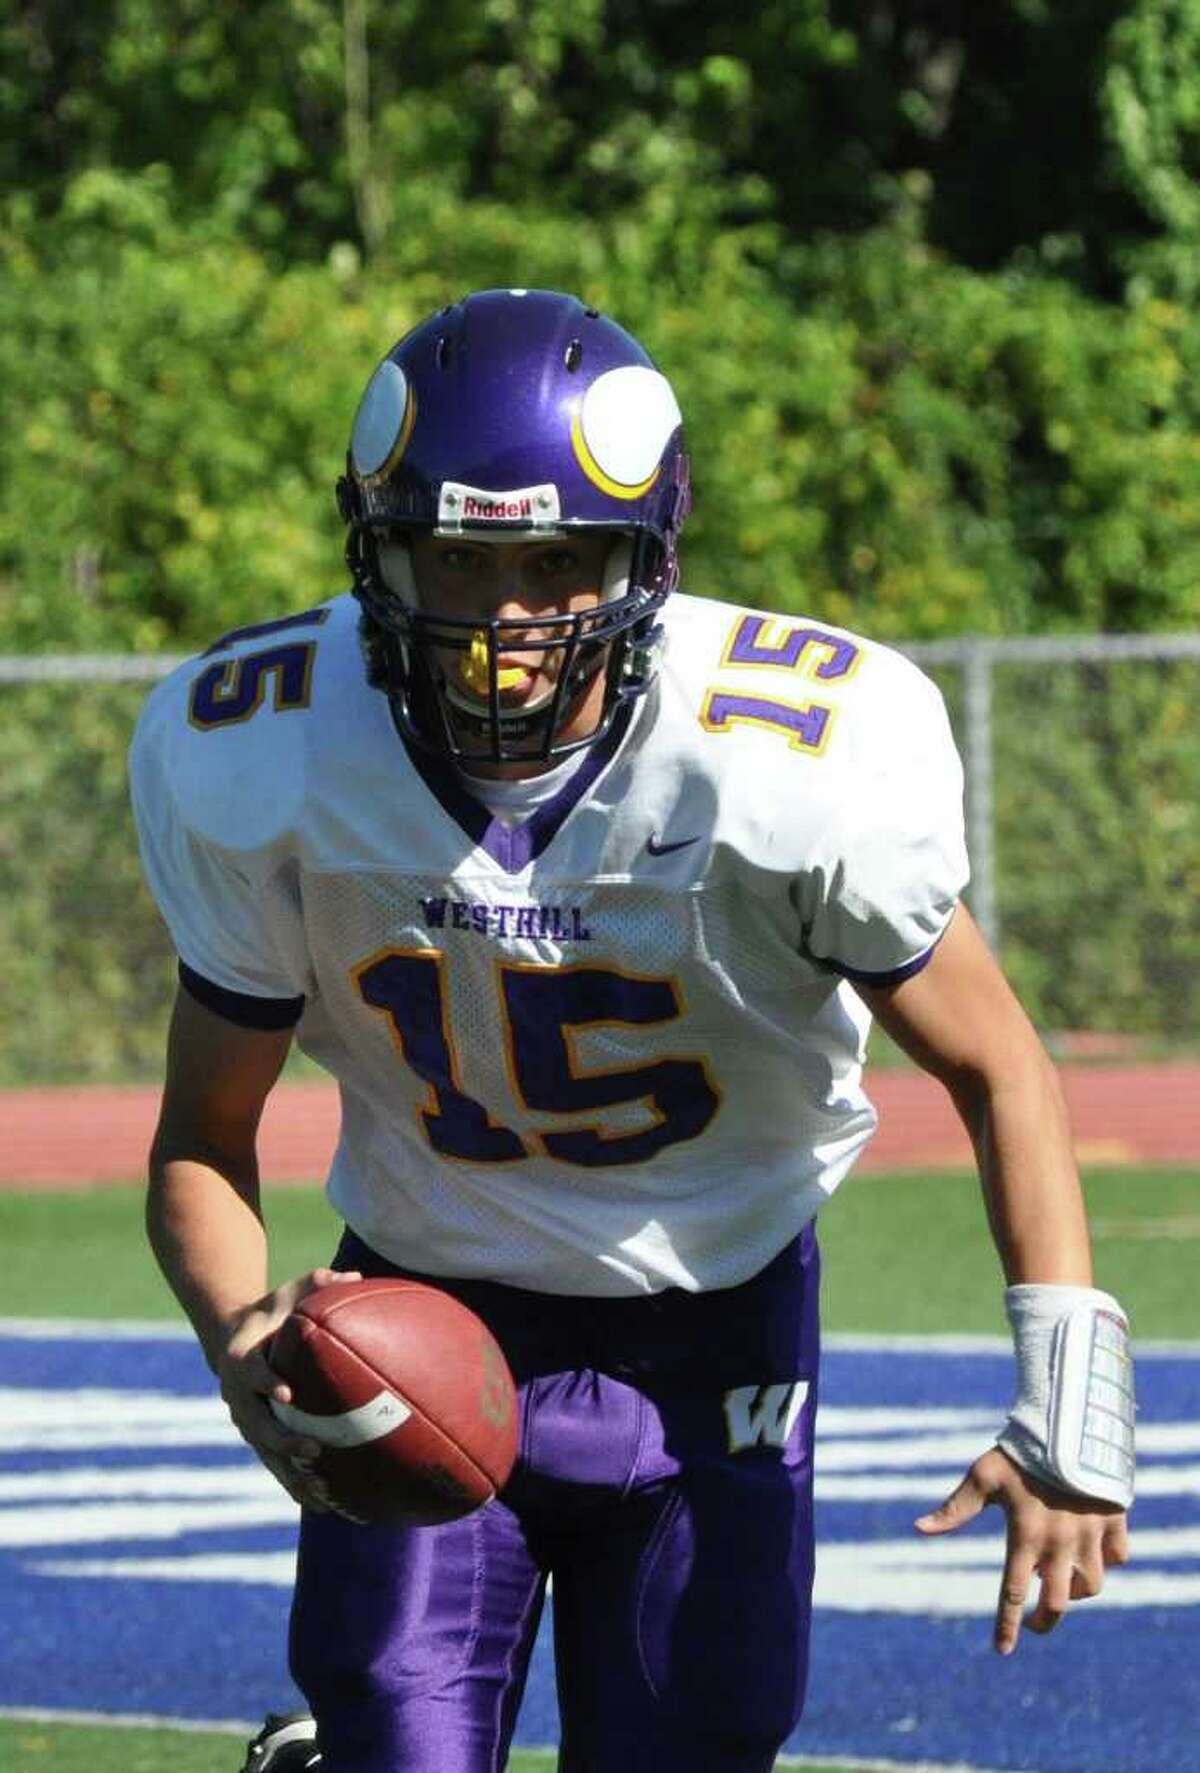 Westhill's Peter Cernansky carries the ball during the first half of the football game against Staples at Staples on Saturday, Oct. 9, 2010.